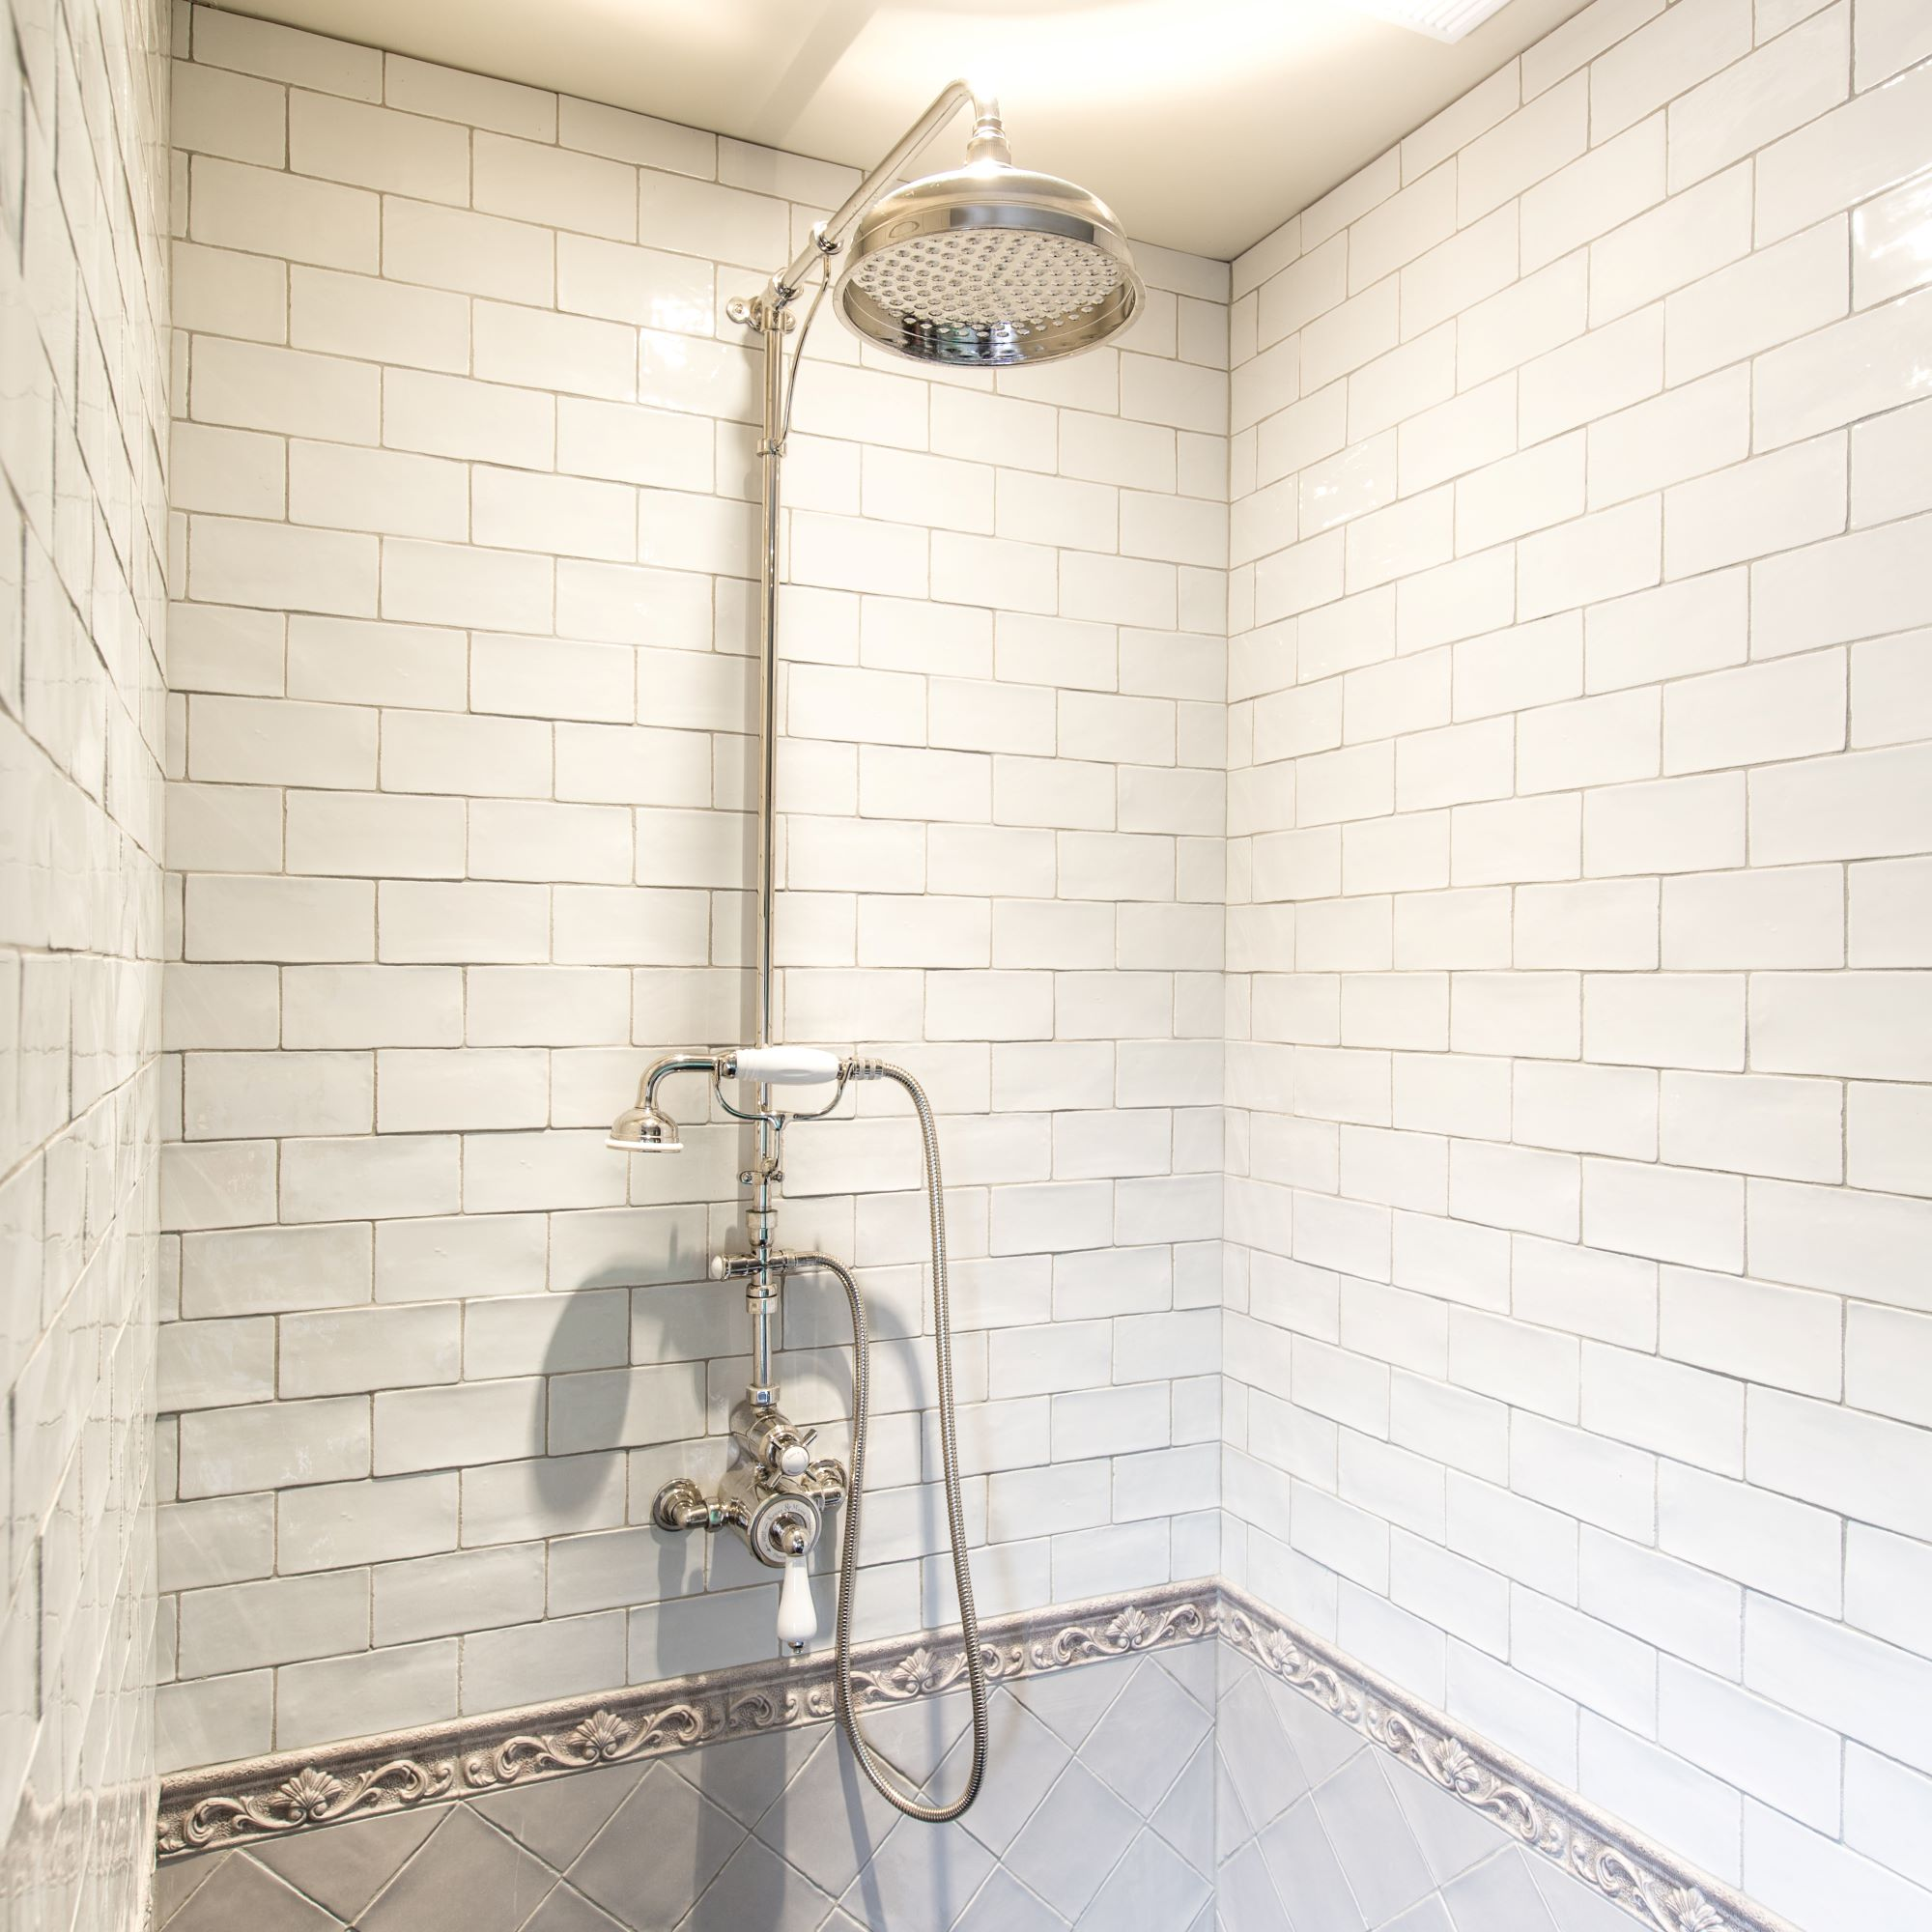 KMbadkamerkranen/kenny_amp_Mason_Traditional_thermostatic_shower_1.jpg